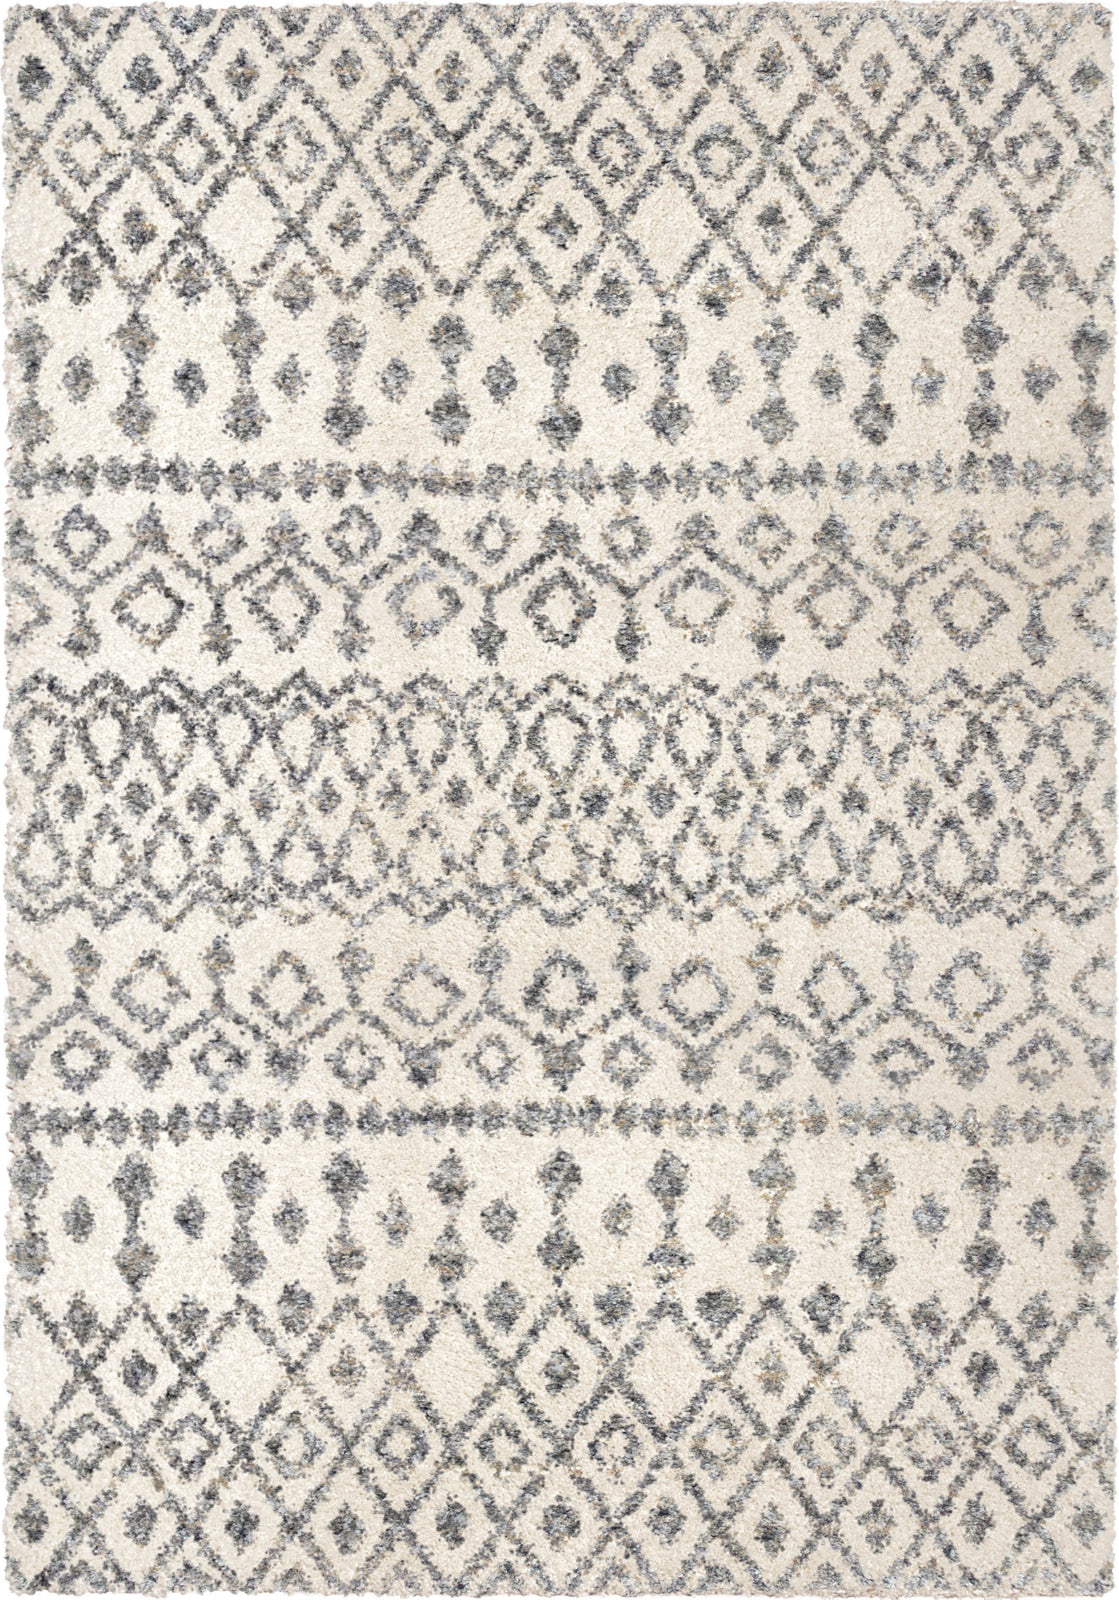 Orian Rugs Cotton Tail Nardik Soft White Area Rug by Palmetto Living main image